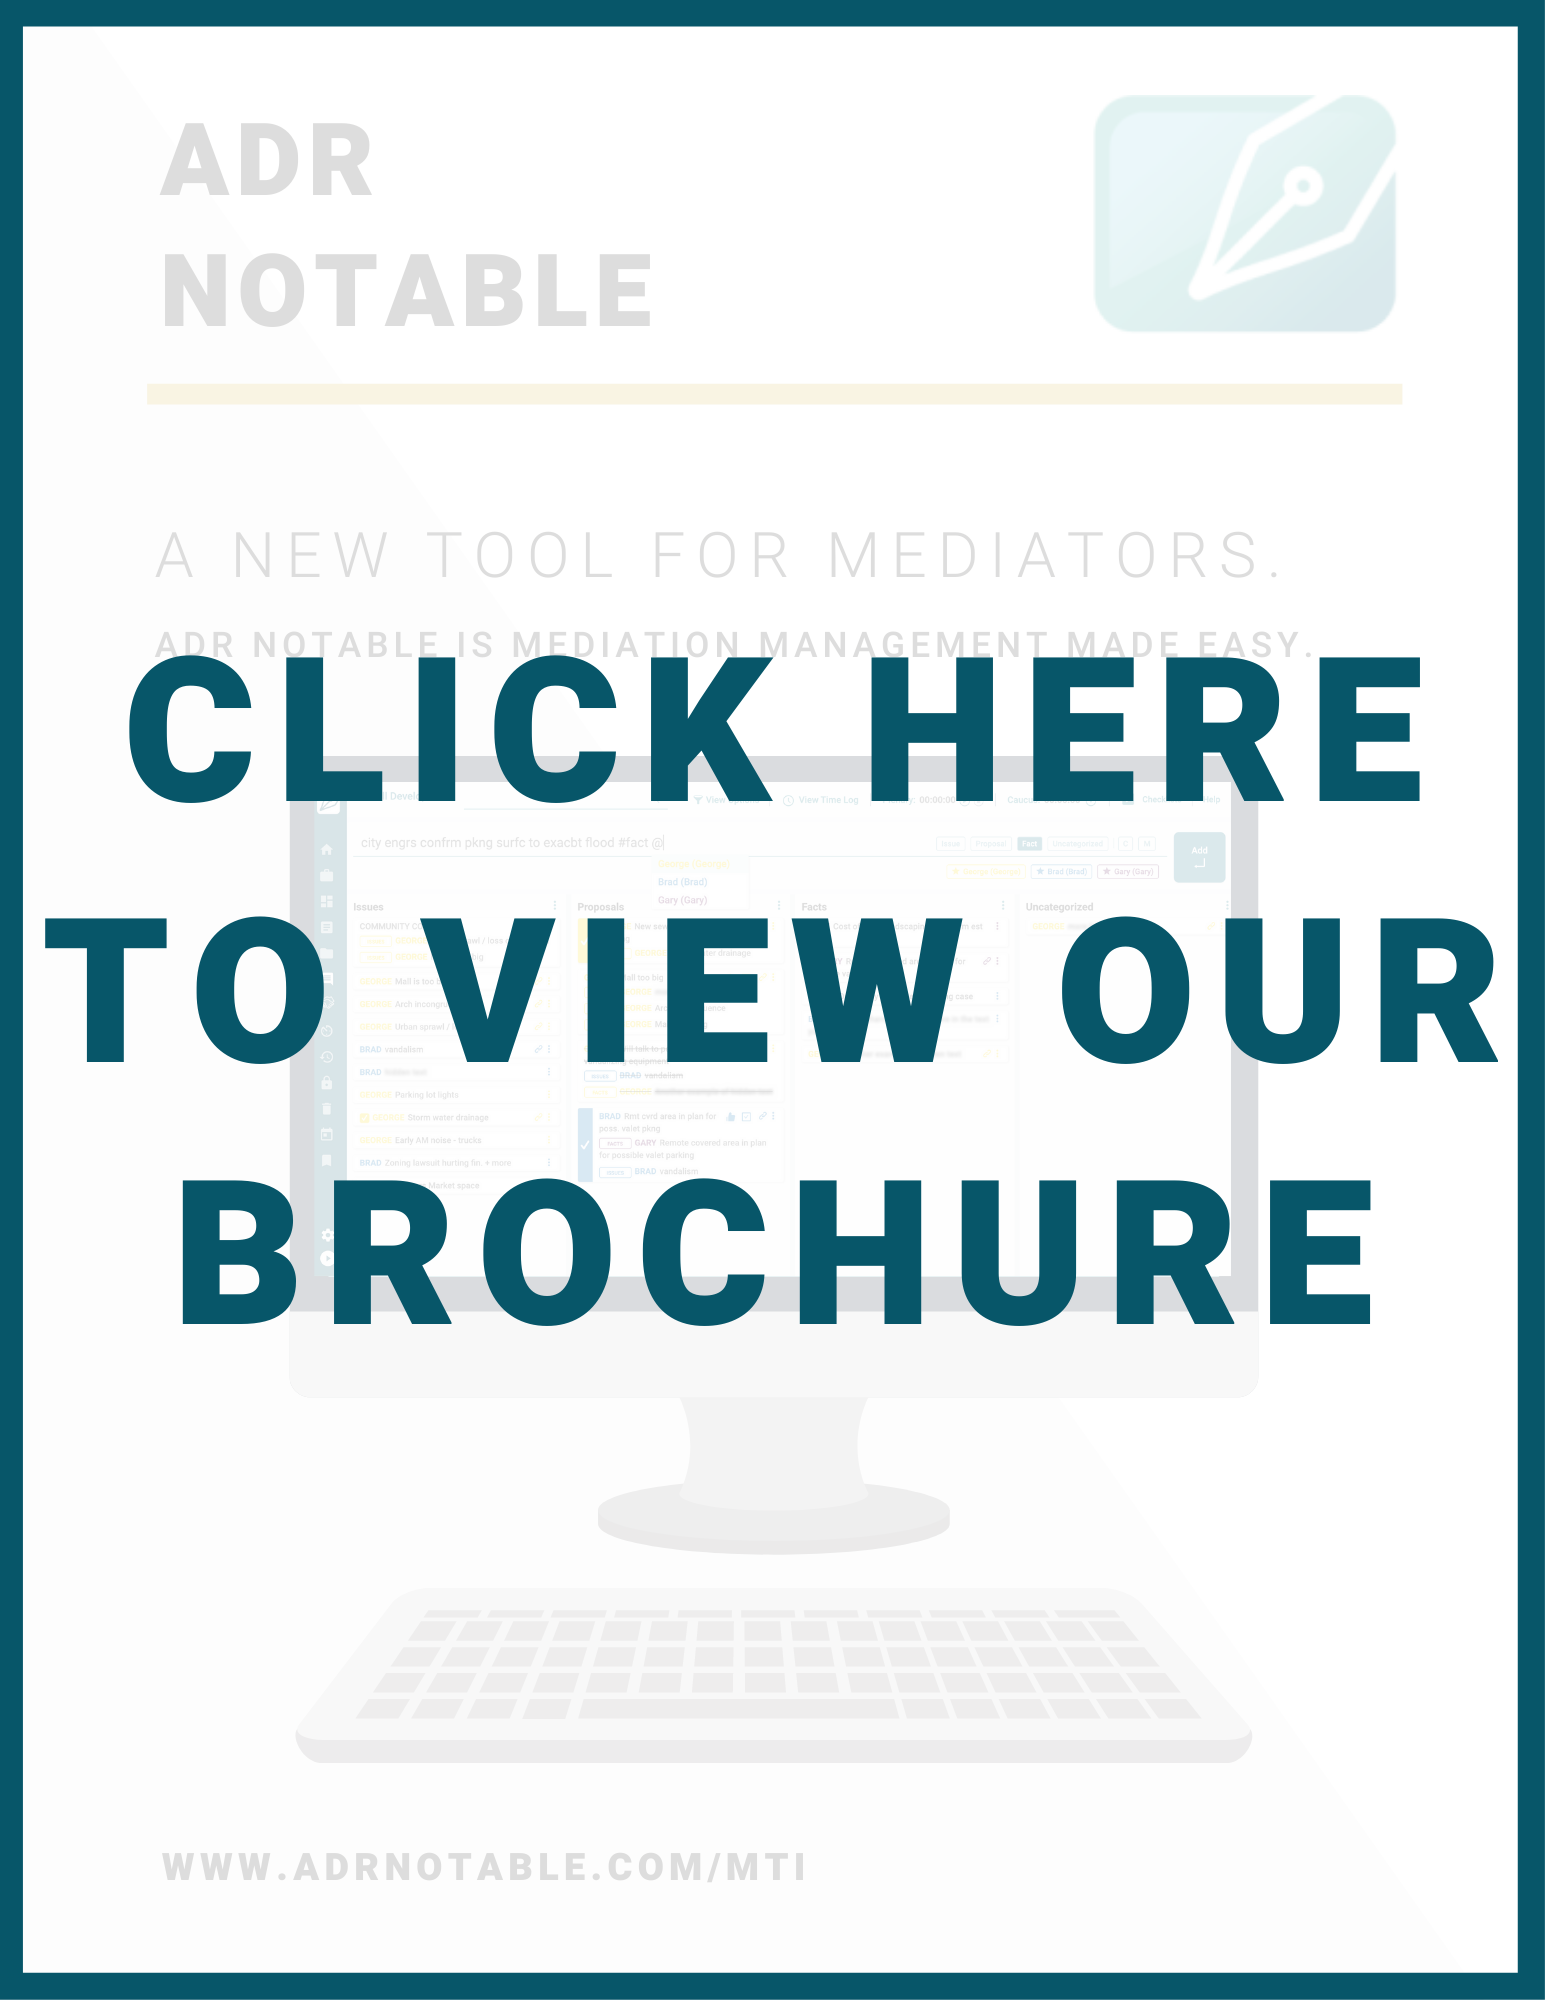 Mediation Training Institute Conference - ADR Notable brochure